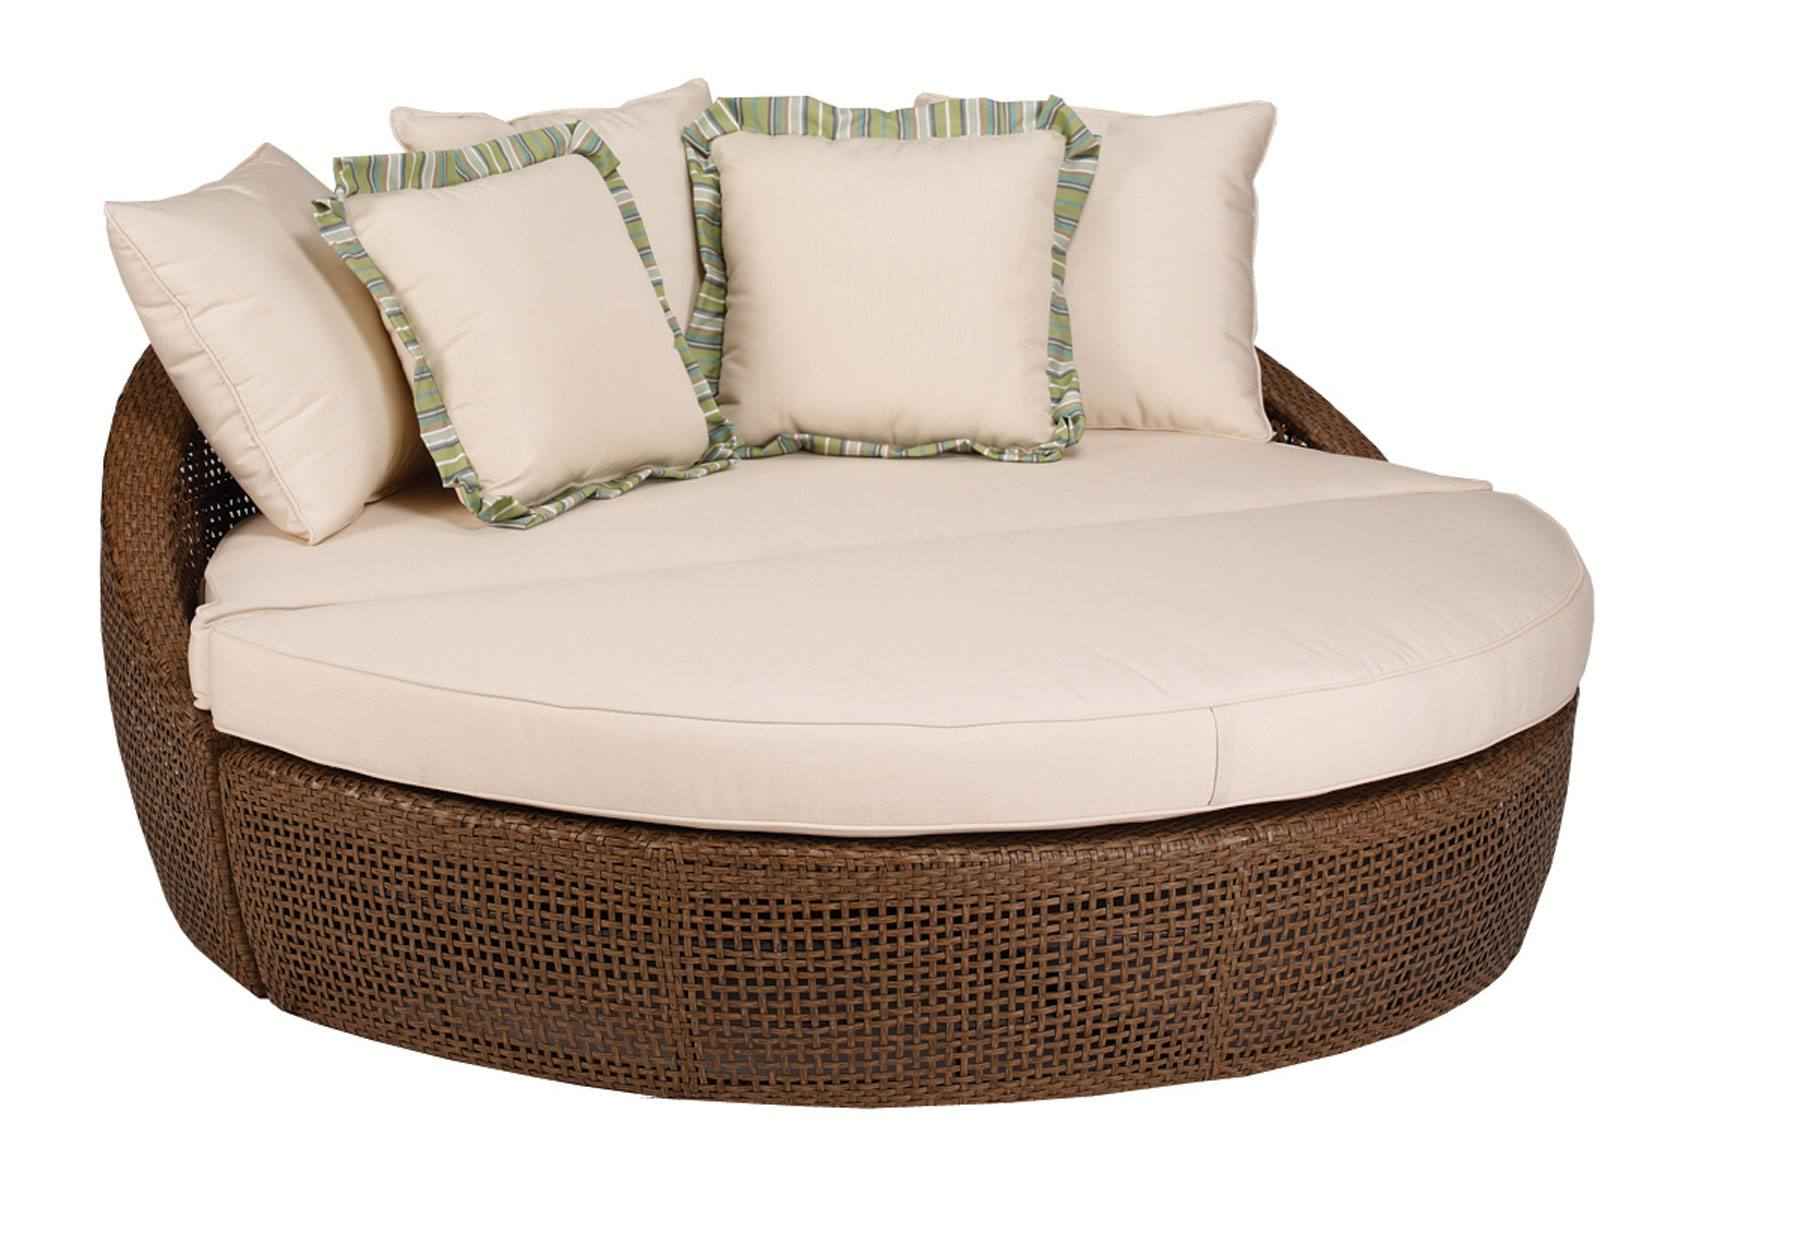 double lounge chair outdoor